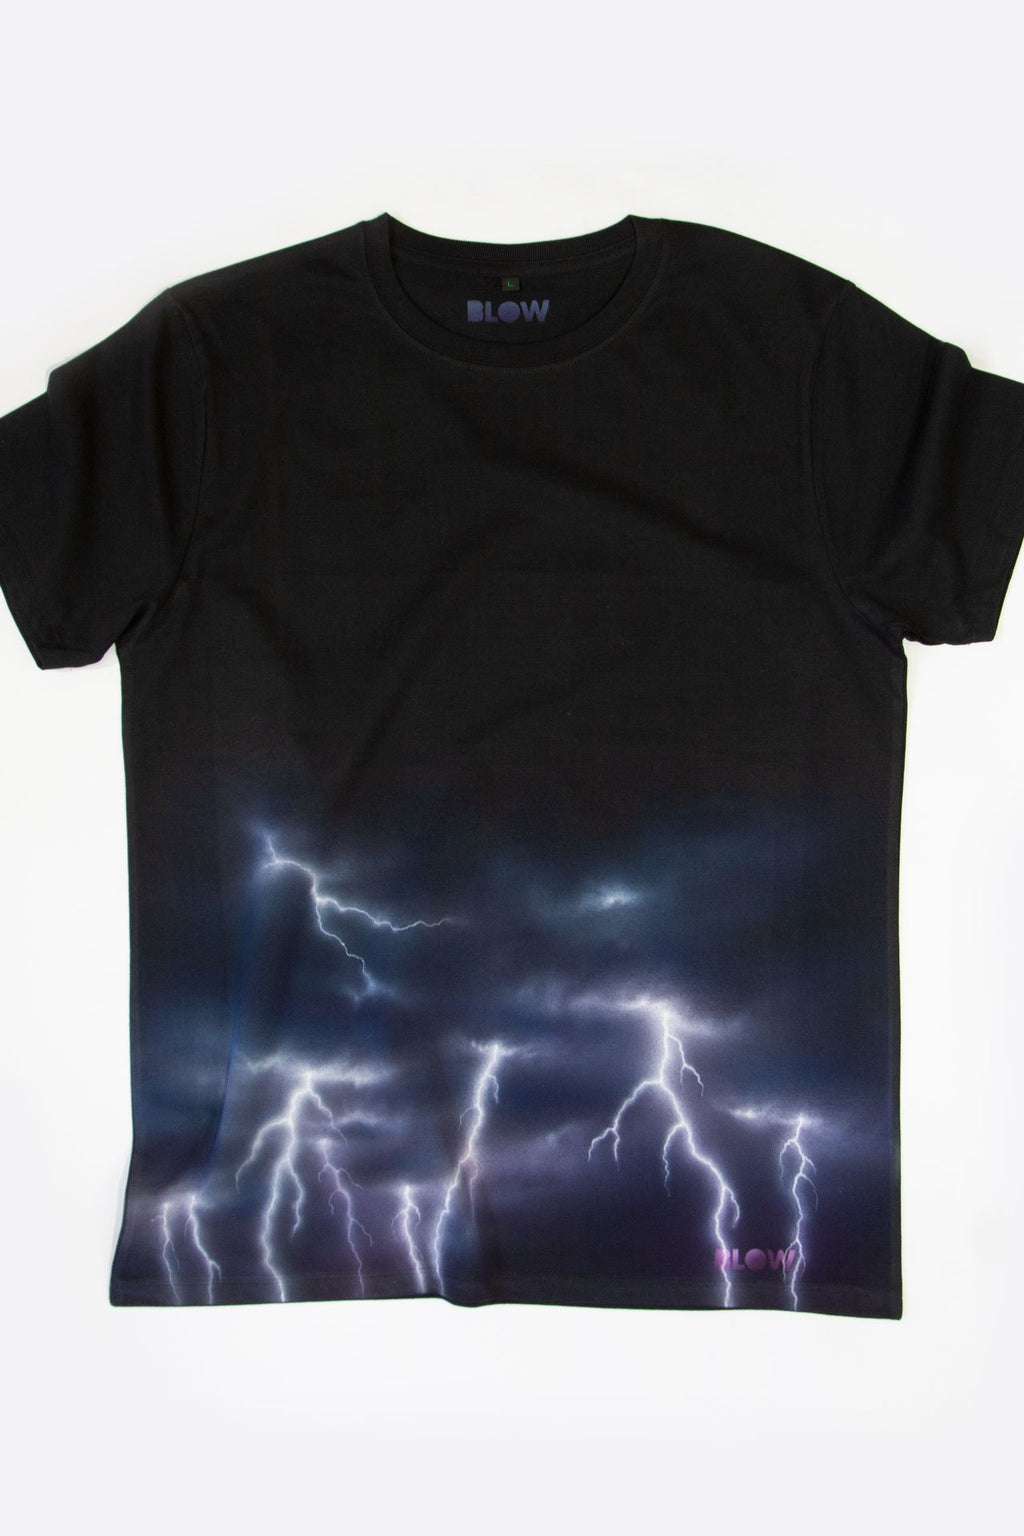 ELECTRIC STORM (Black) - Unisex premium short sleeve t-shirt